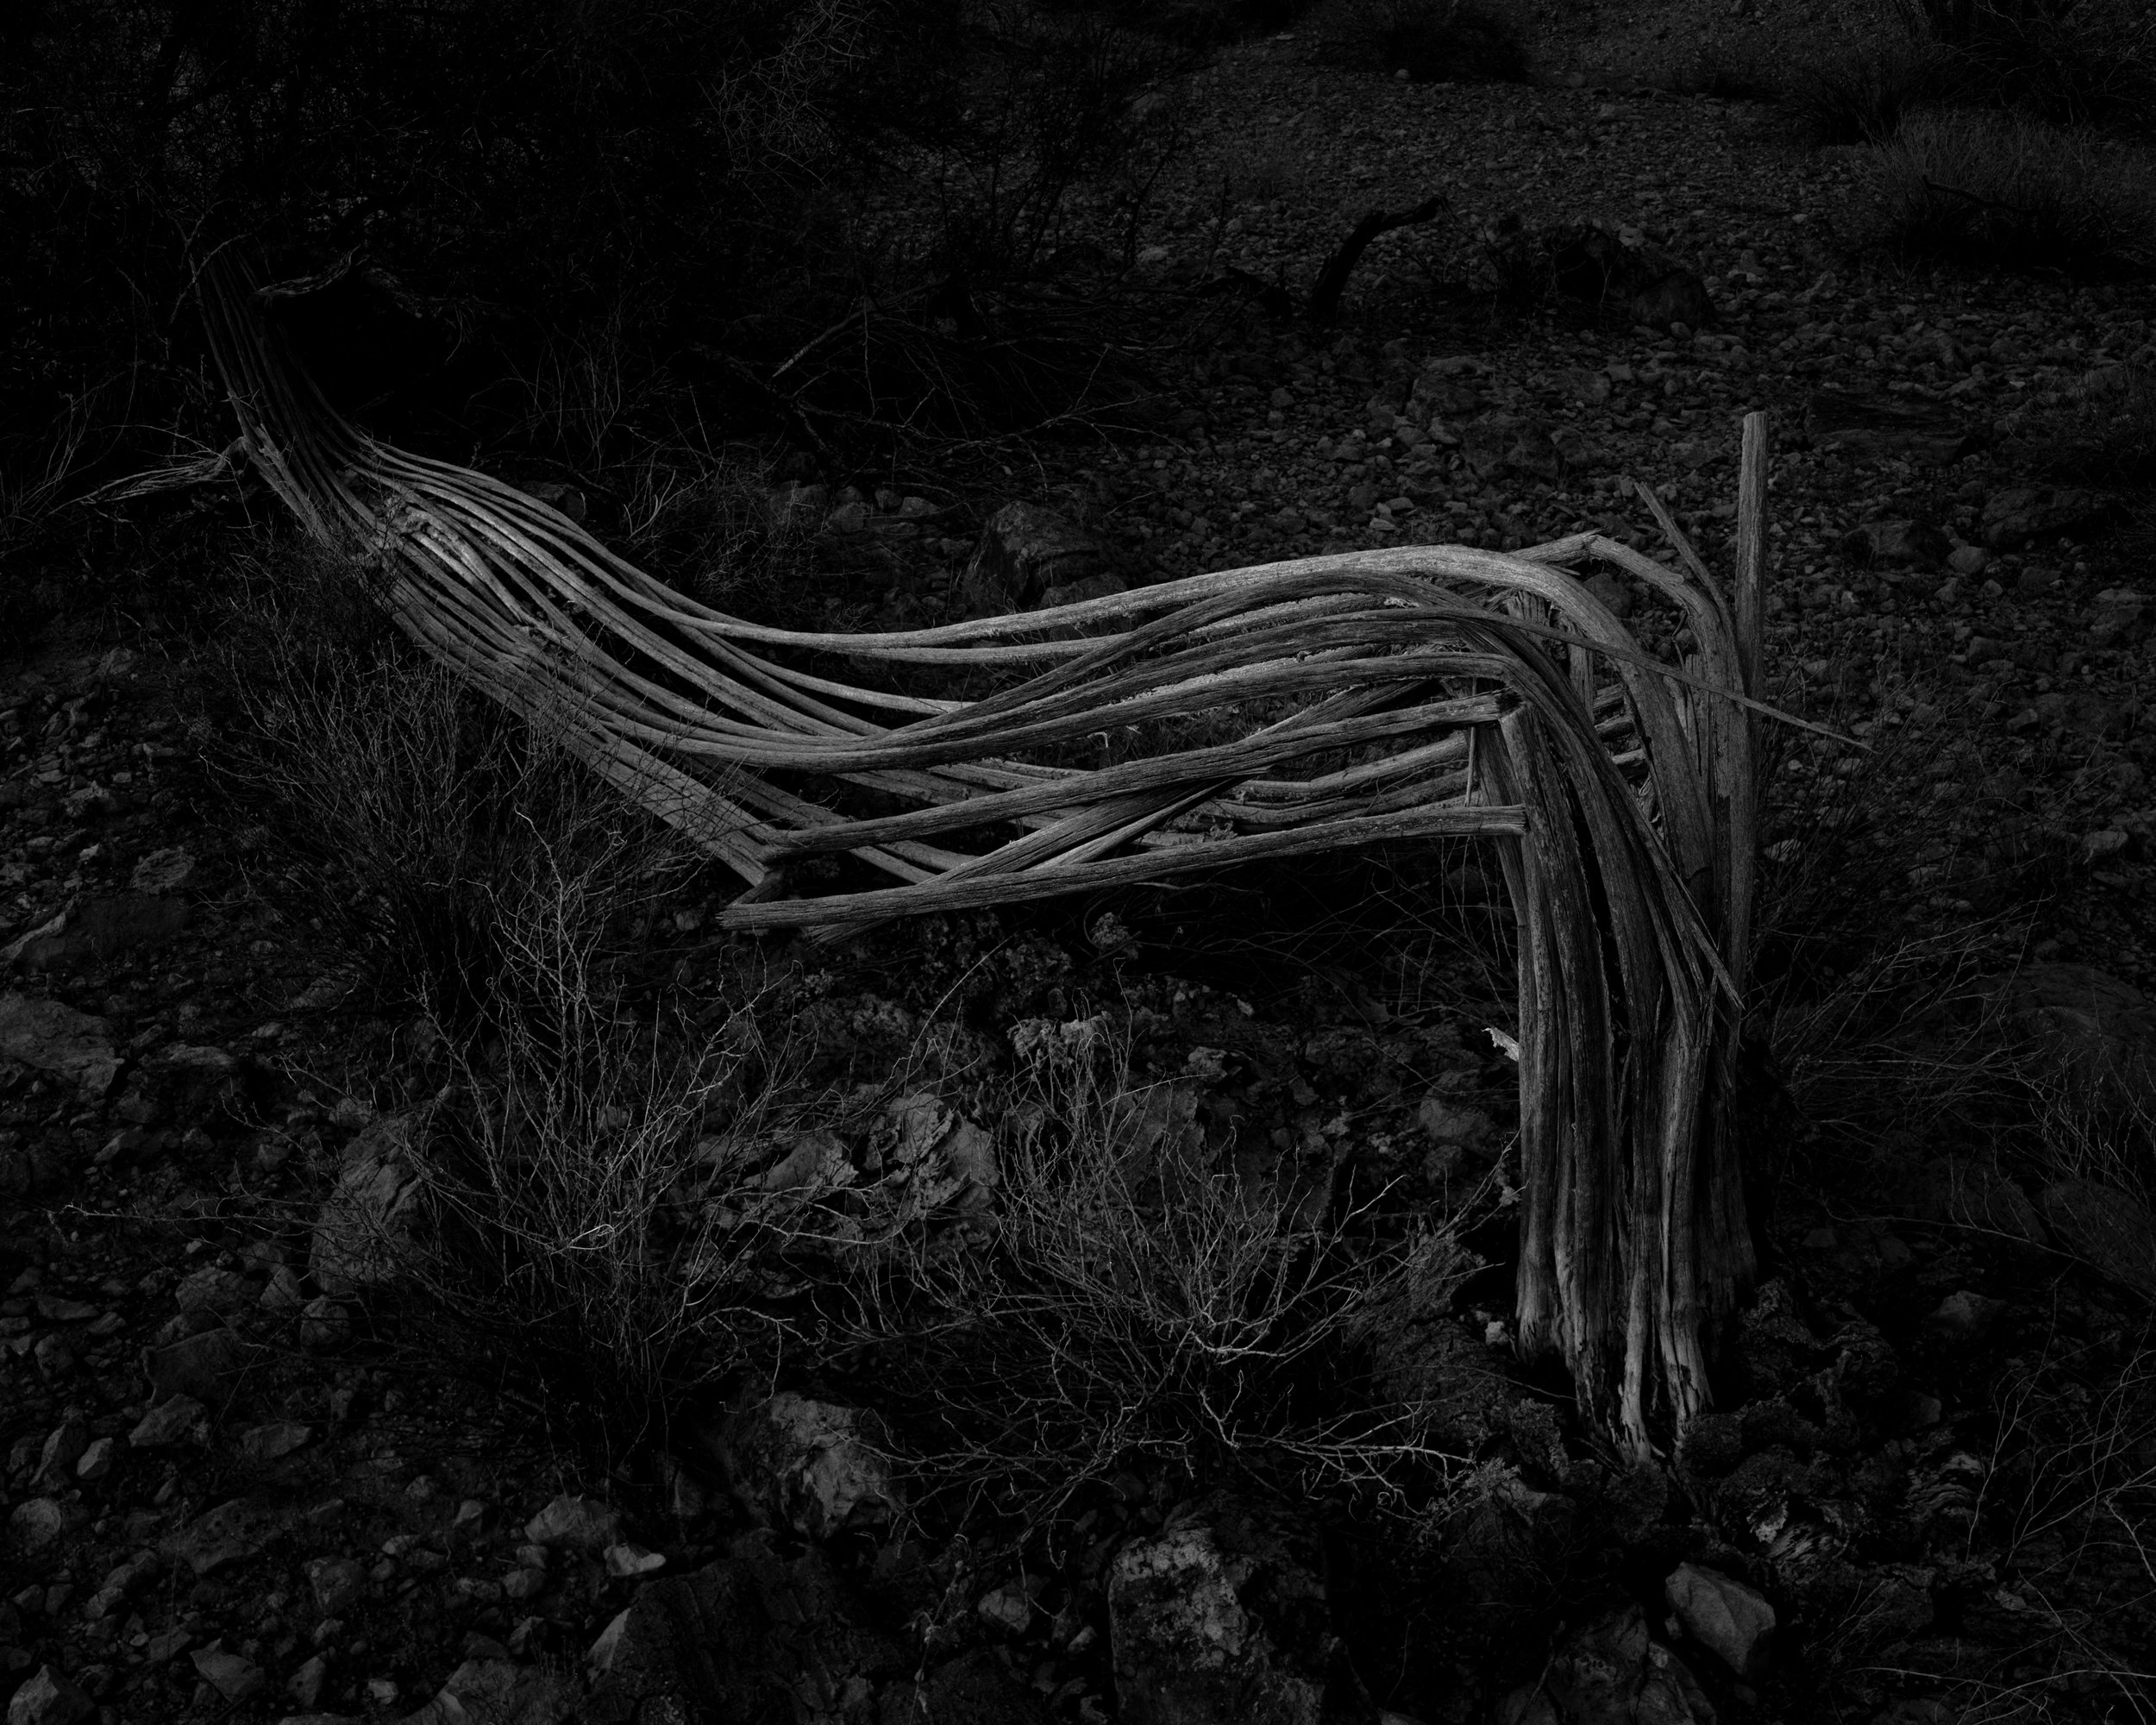 MICHAEL LUNDGREN  Untitled (broken), 2004  Gelatin Silver Print  Available sizes 20 x 24 in, ed. 10 + 2AP 32 x 40 in, ed. 3 + 1AP